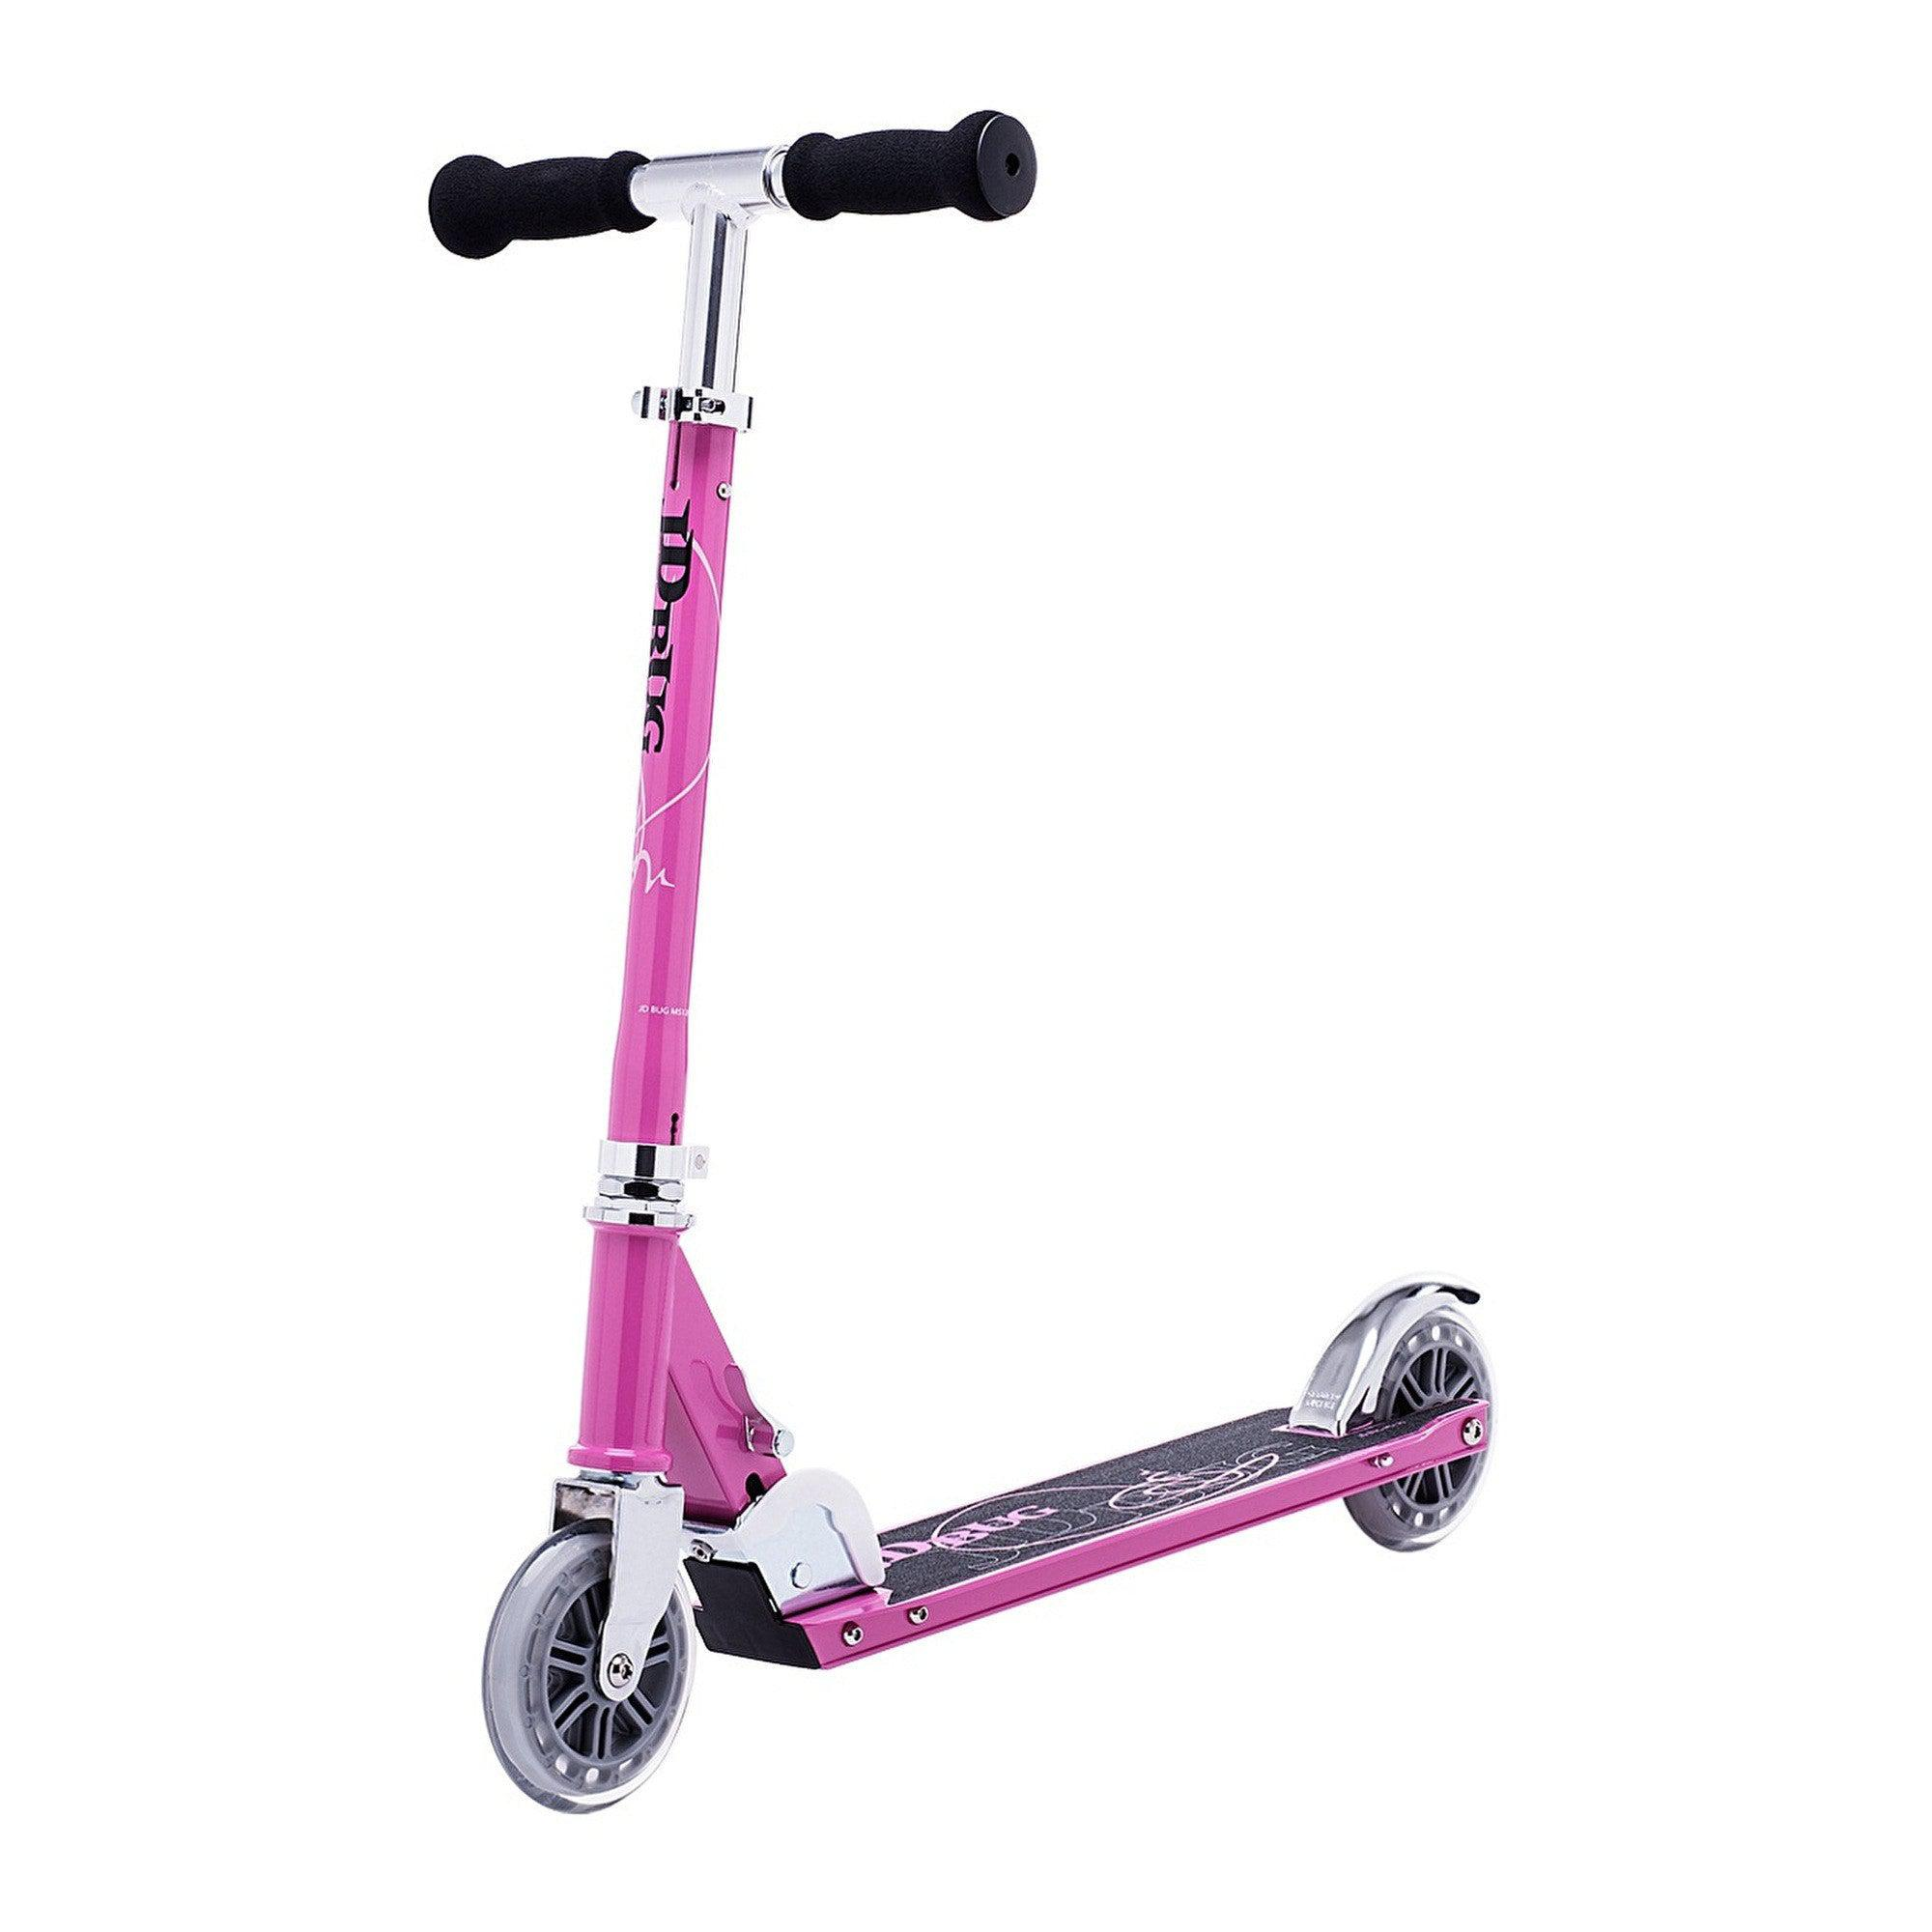 JD Bug Classic Street 120 Pastel Pink Scooter